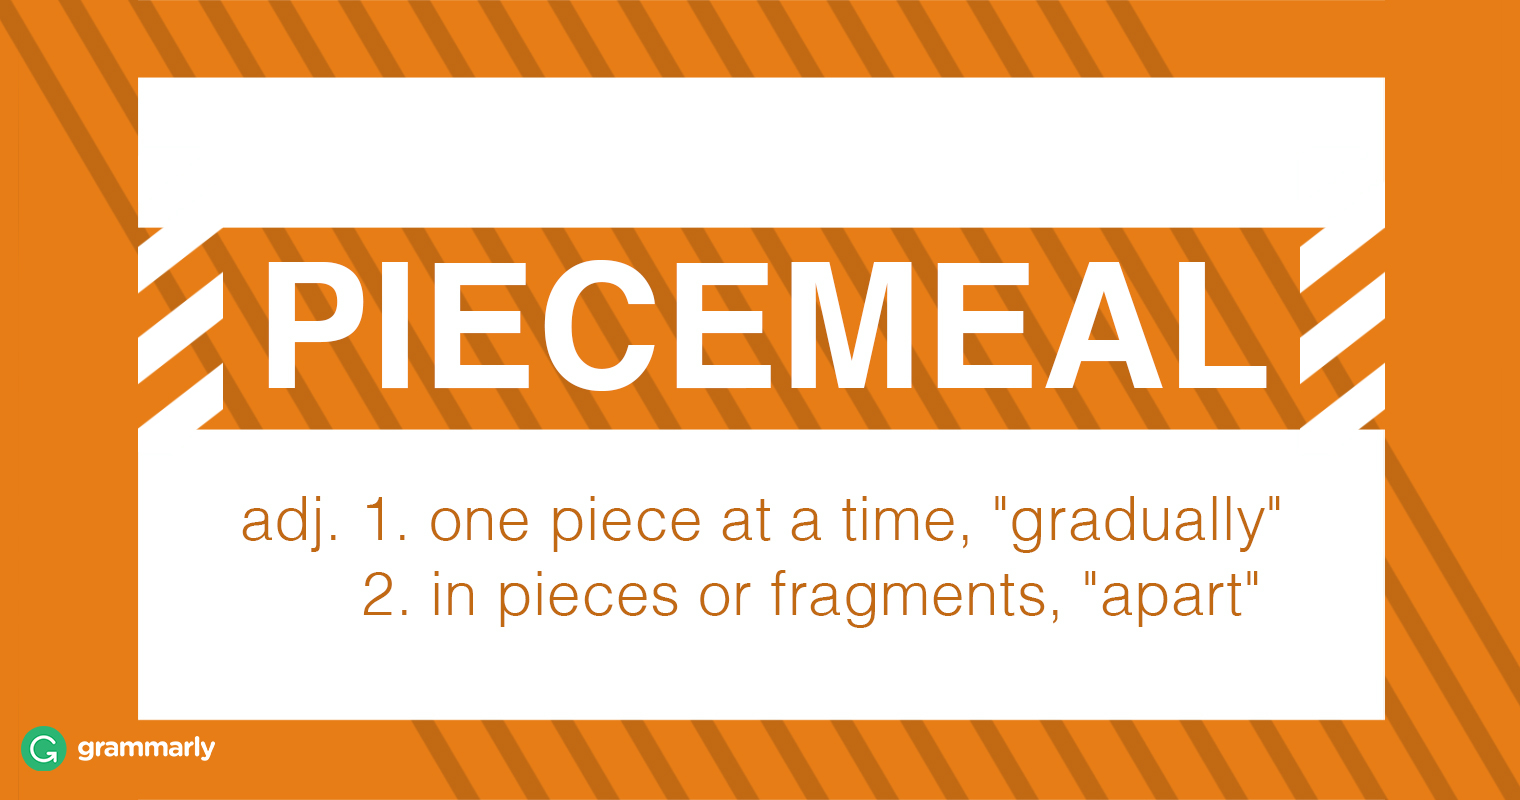 Piecemeal Meaning and Usage